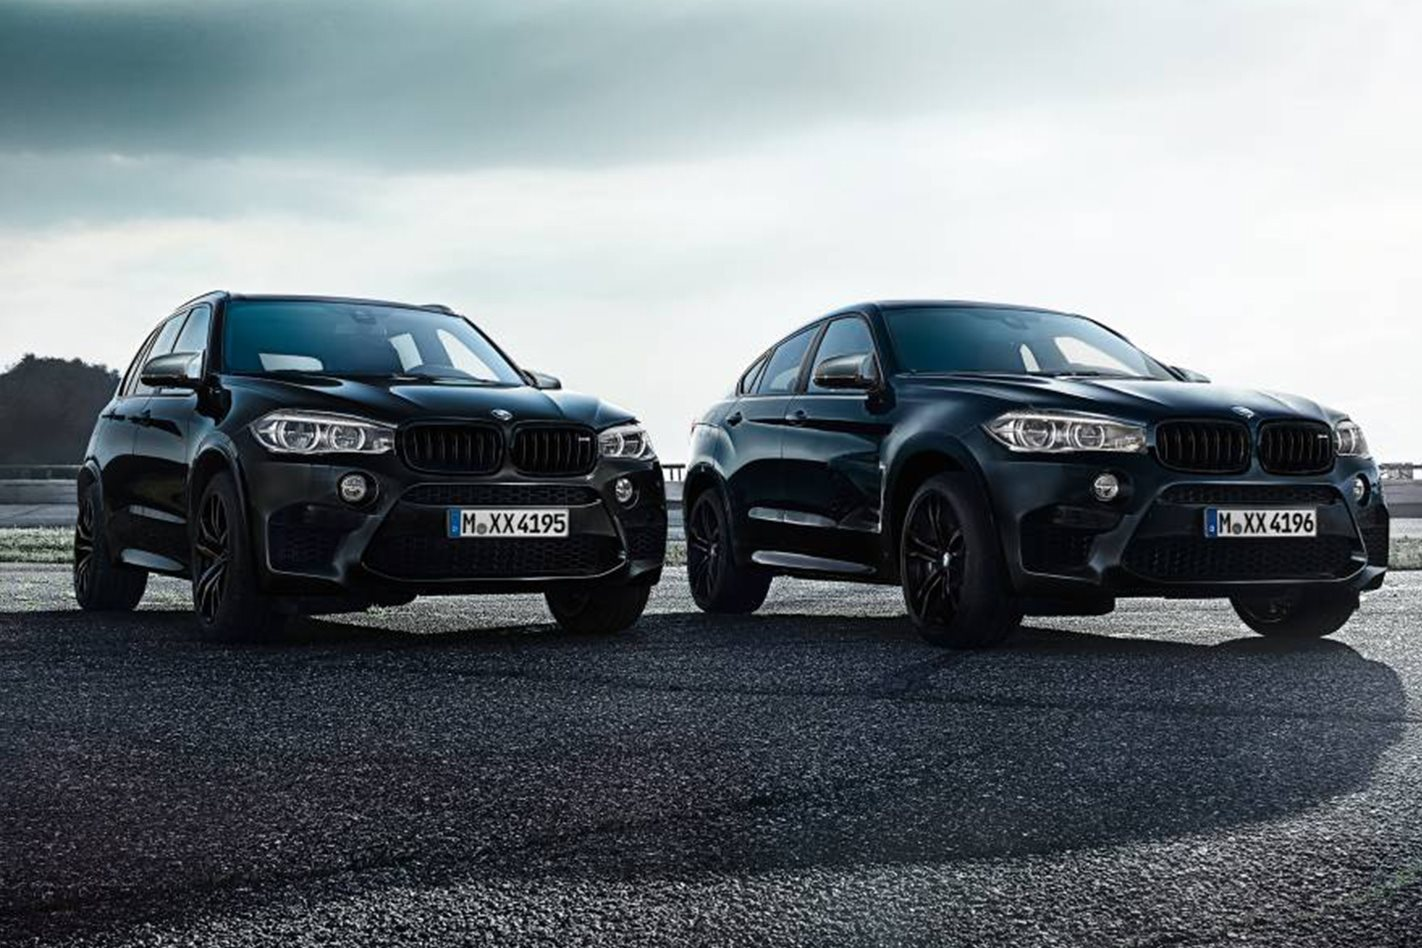 BMW X5 M and X6 M Black Fire Editions exterior